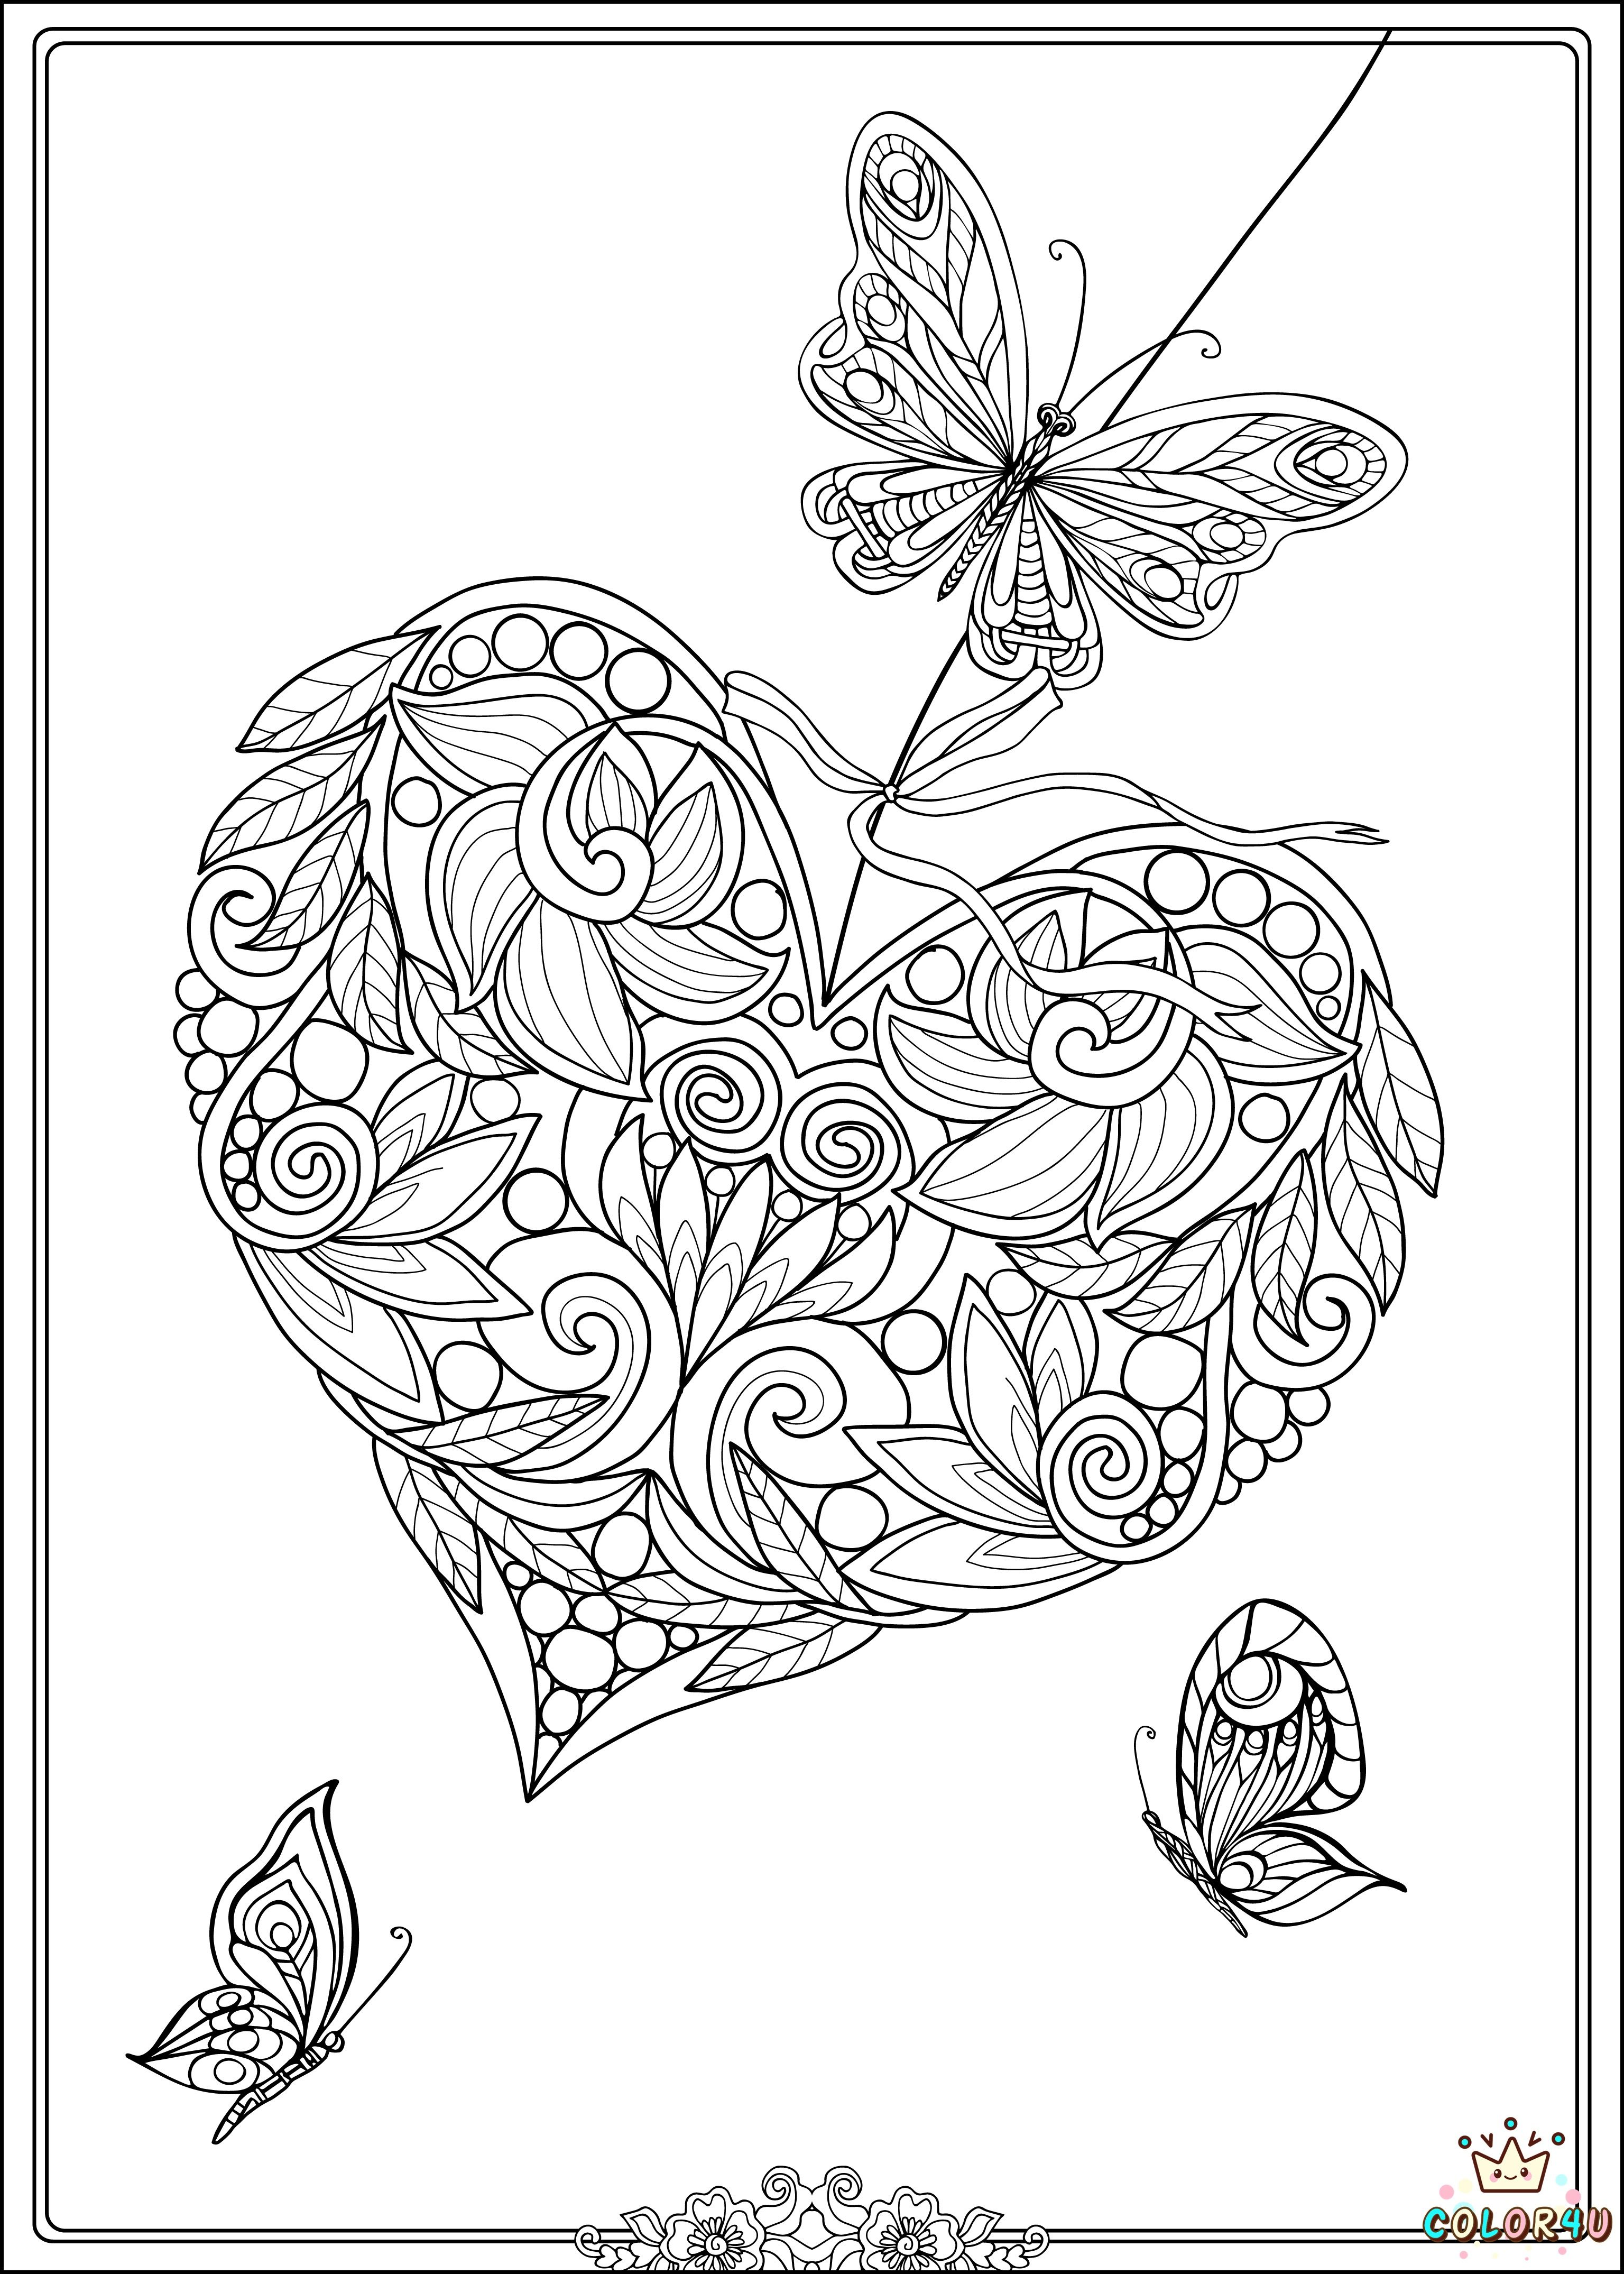 Decorative Love Heart With Flowers And Butterflies Coloring Book For Adult Older Children Page Vector Illustration